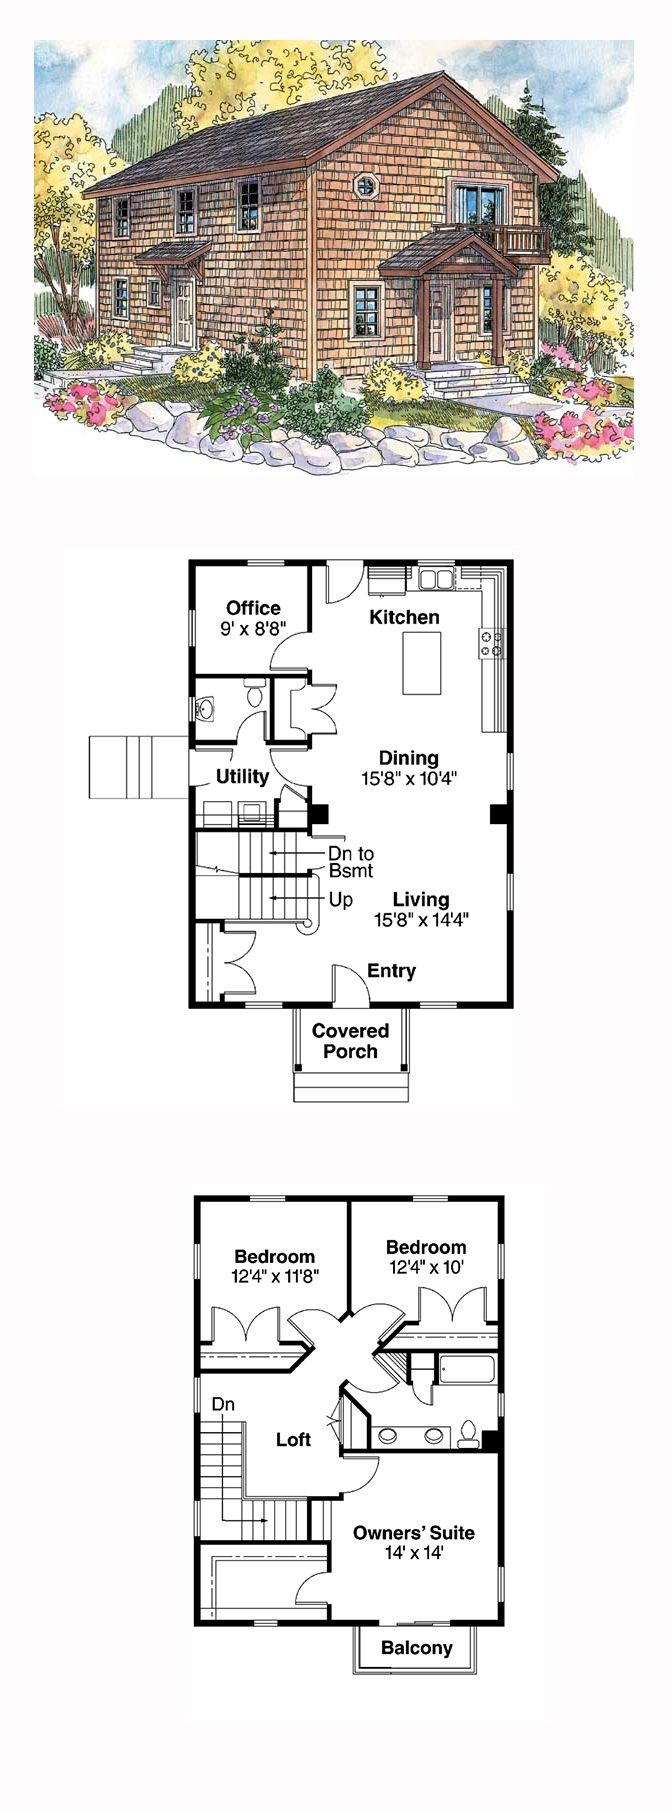 1000 images about saltbox house plans on pinterest Saltbox cabin plans